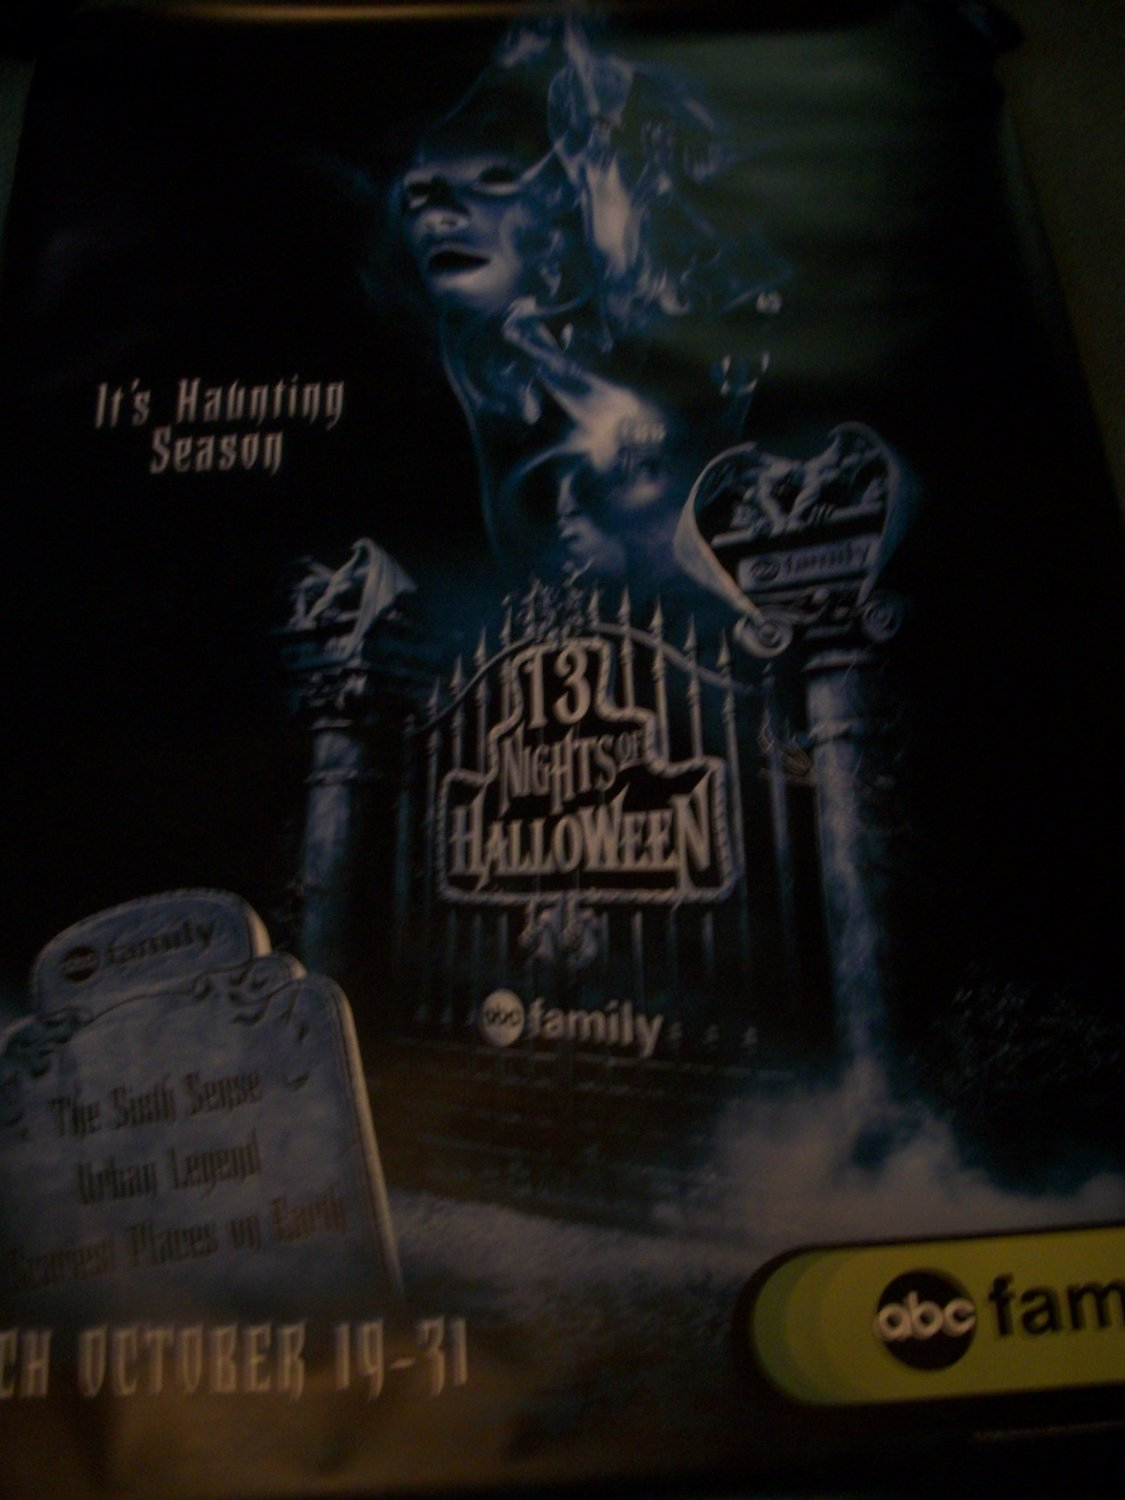 13 Nights of Halloween Tv Show Poster Approx. 48 X 69